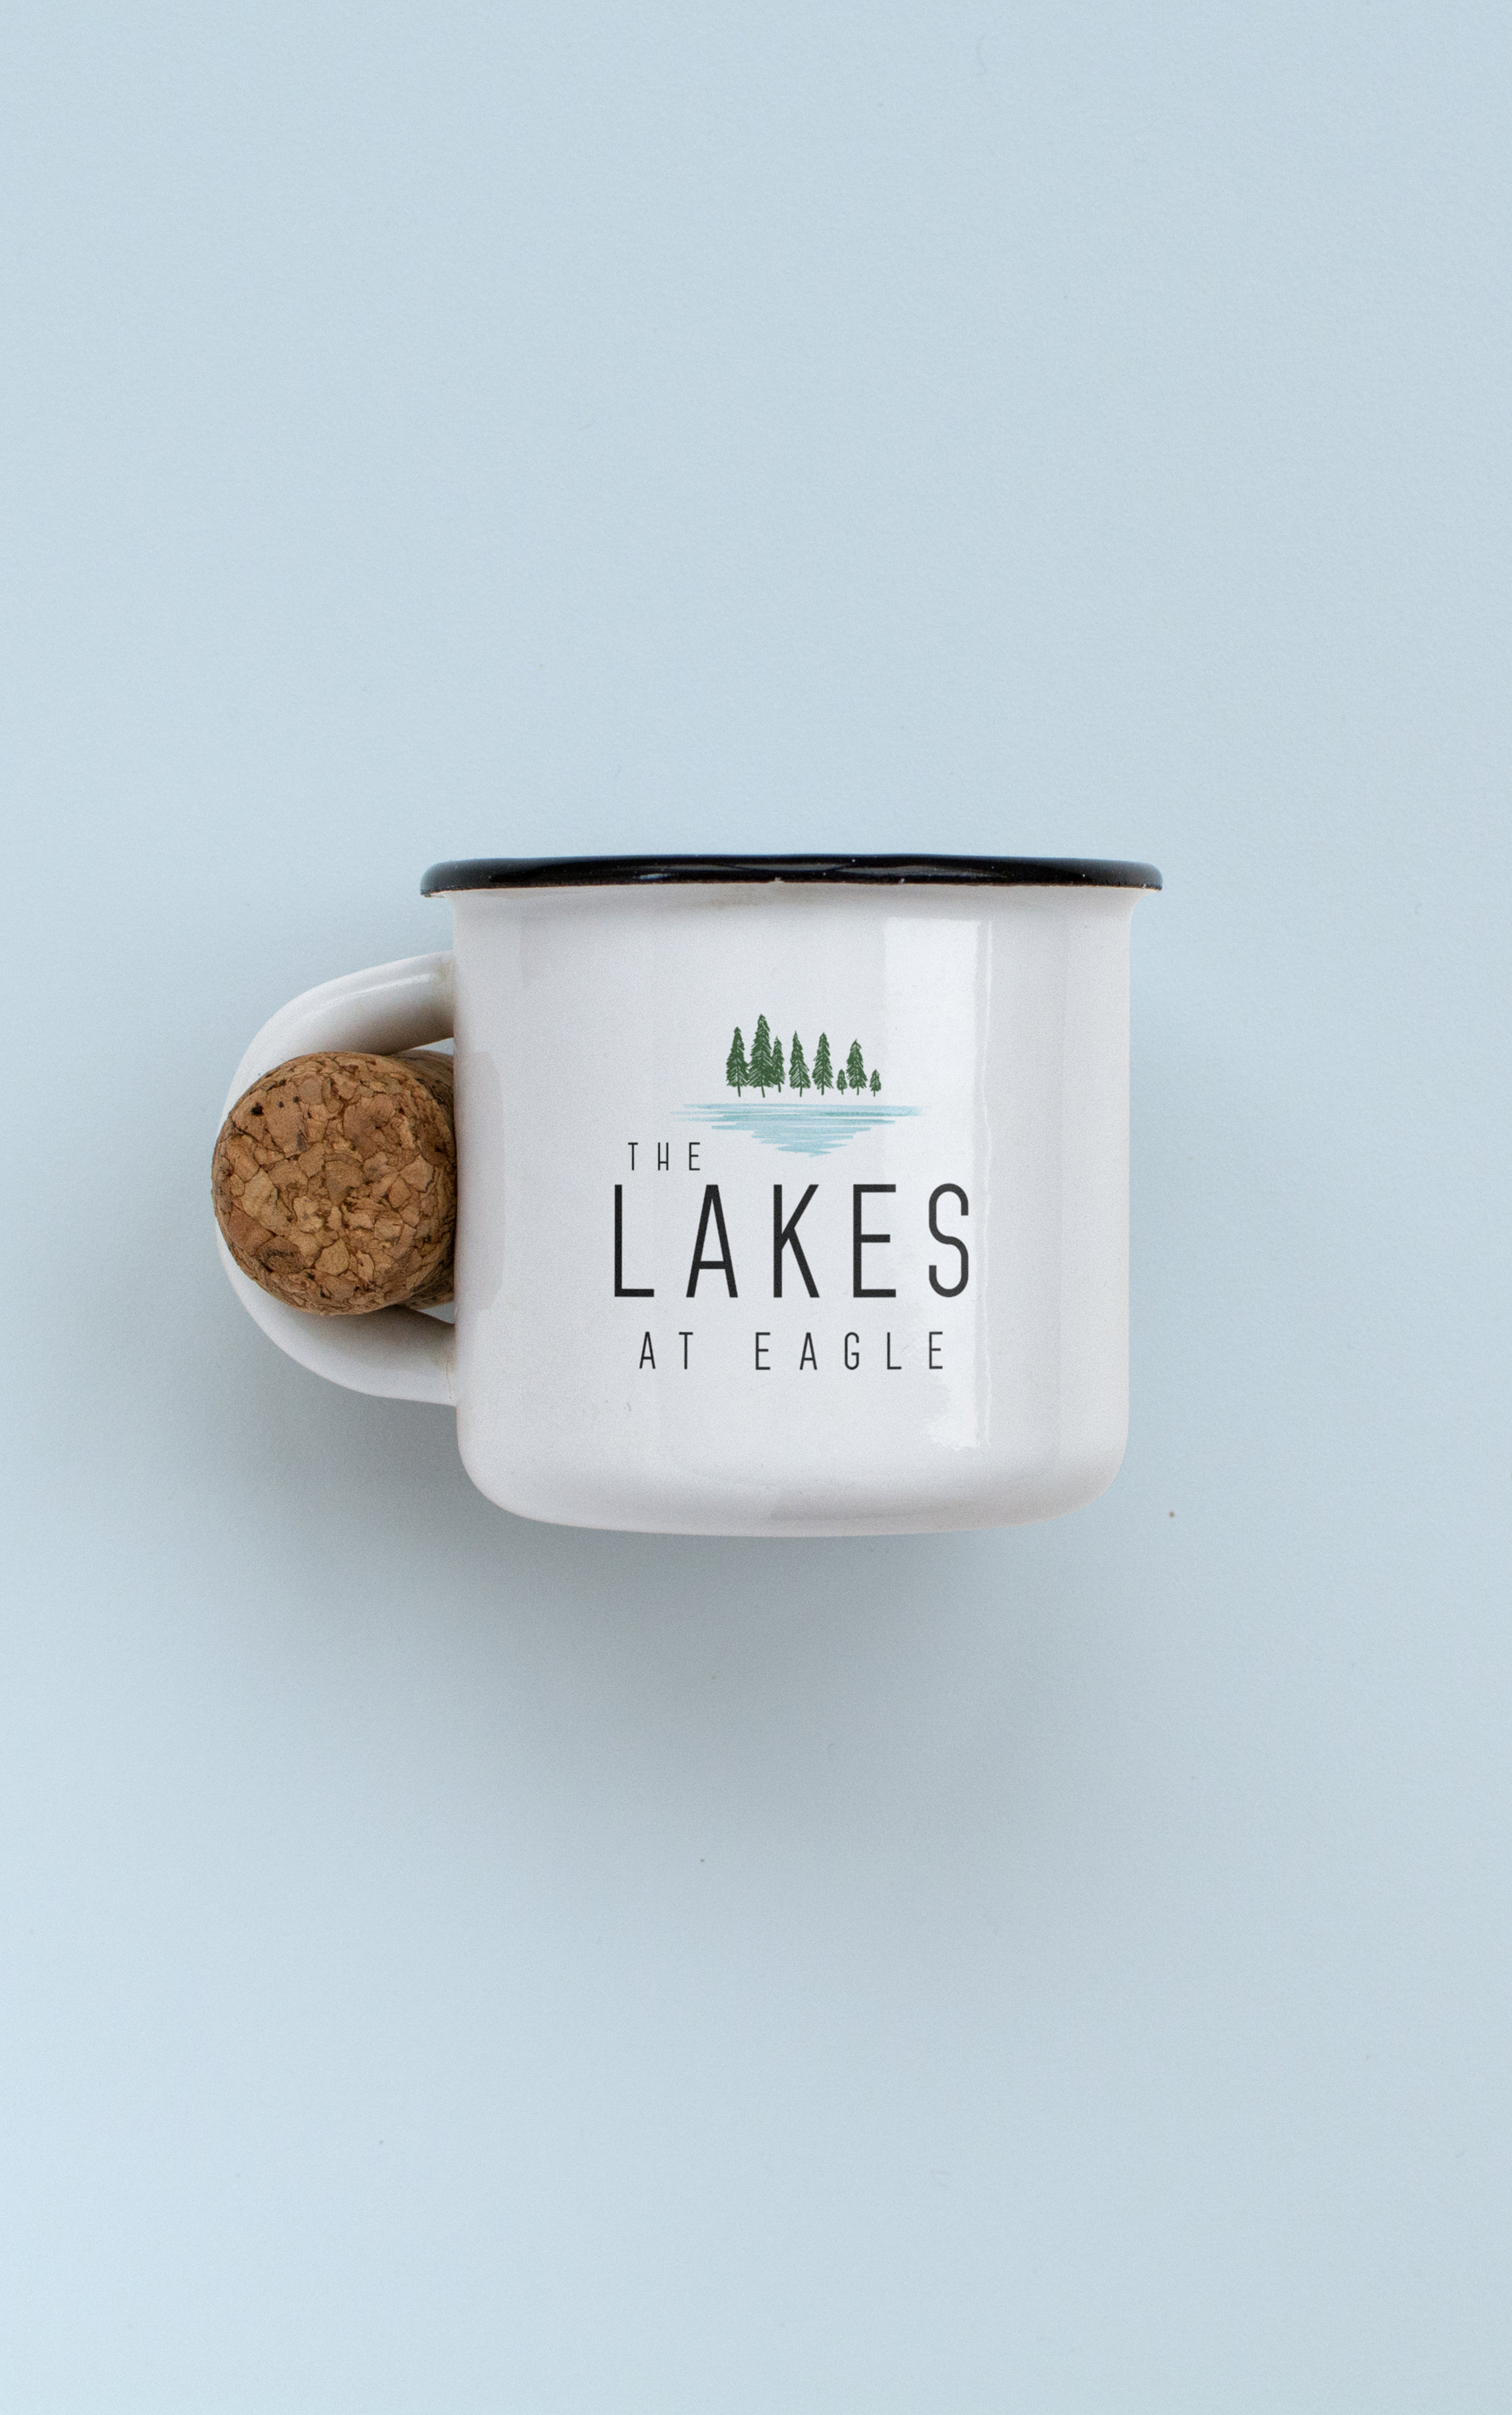 The Lakes at Eagle - LOGO DESIGNFor this up and coming apartment complex, nestled in Eagle, Idaho, we were able to capture the essences of what this place is all about.Designing the logo for this client was so much fun and we are so proud to have been able to work with them on creating the face of the apartments.To learn more about this company, click the view button below.